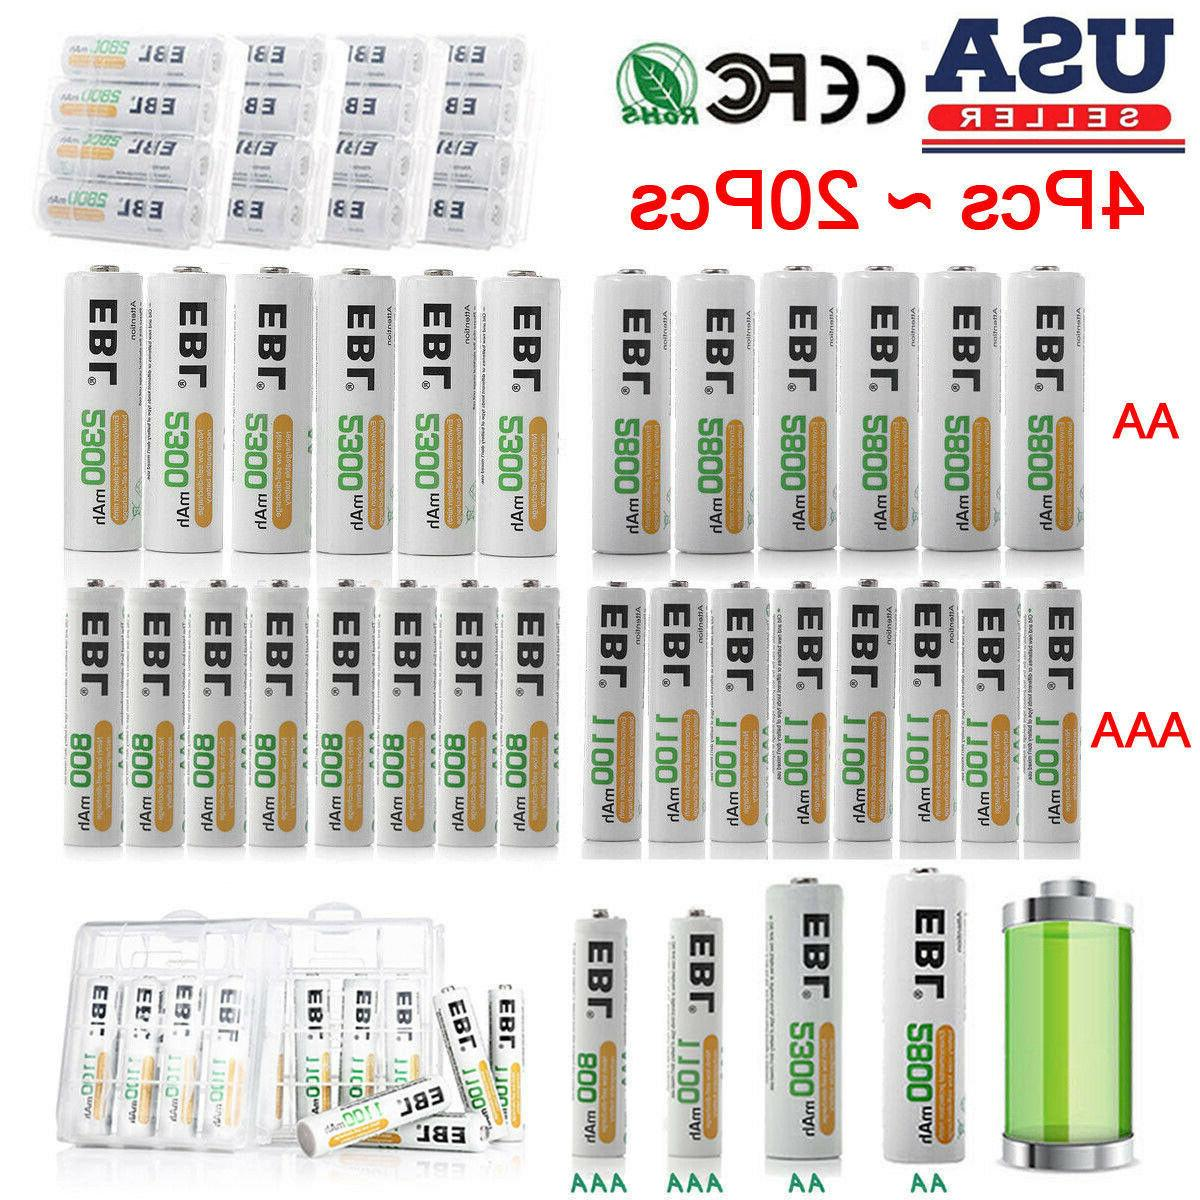 EBL Lot AAA AA Ni-MH Rechargeable Batteries for Camera Flash